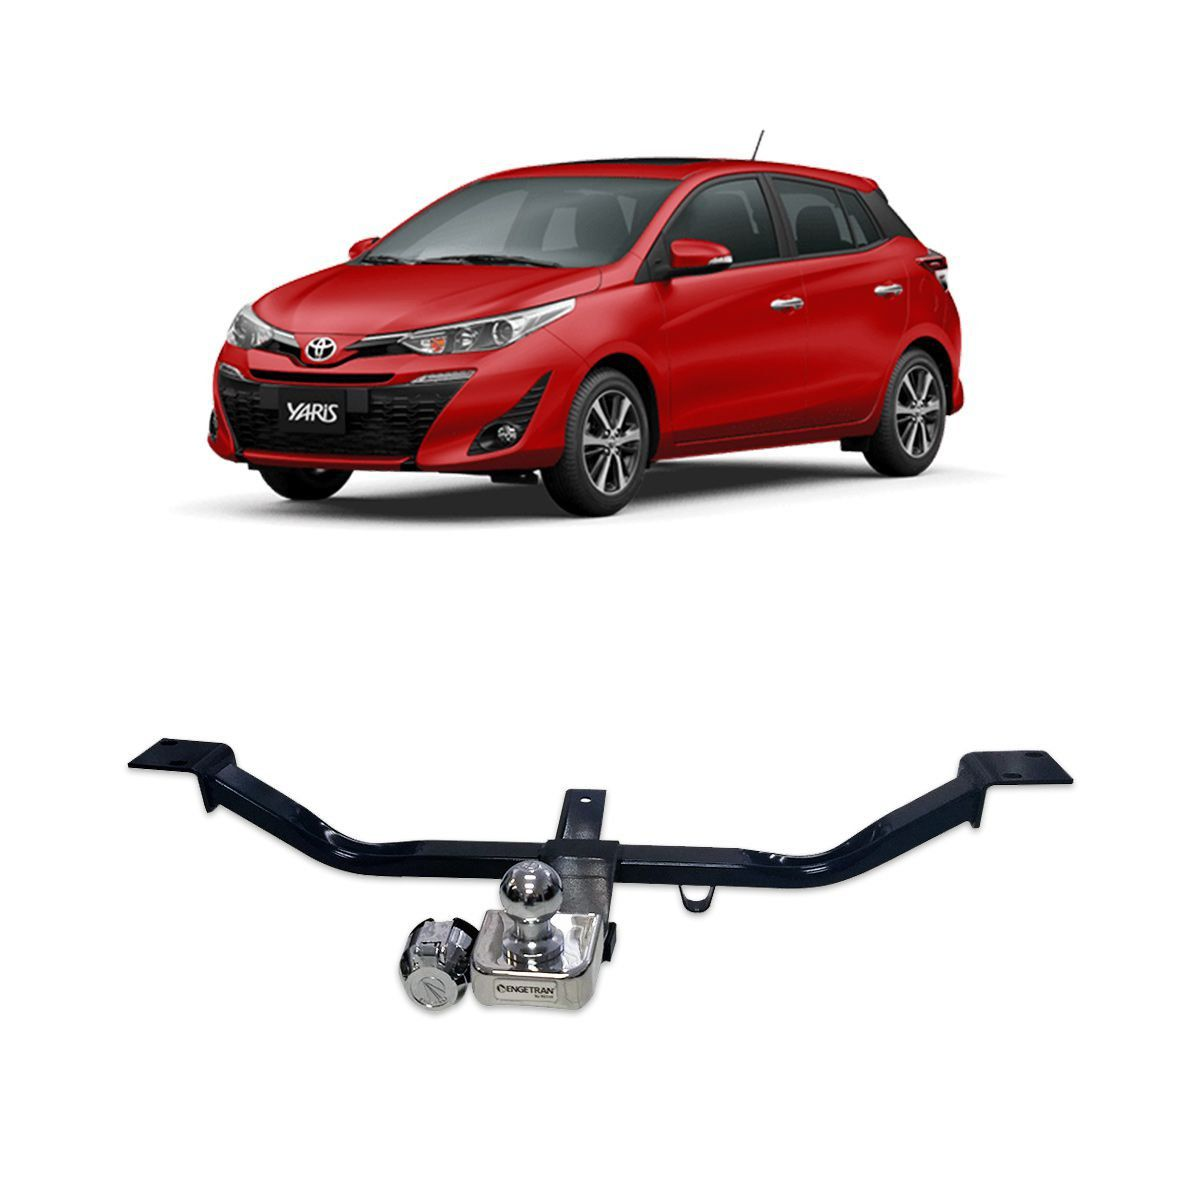 Engate Reboque Yaris Hatch 2018 2019 Fixo Engetran